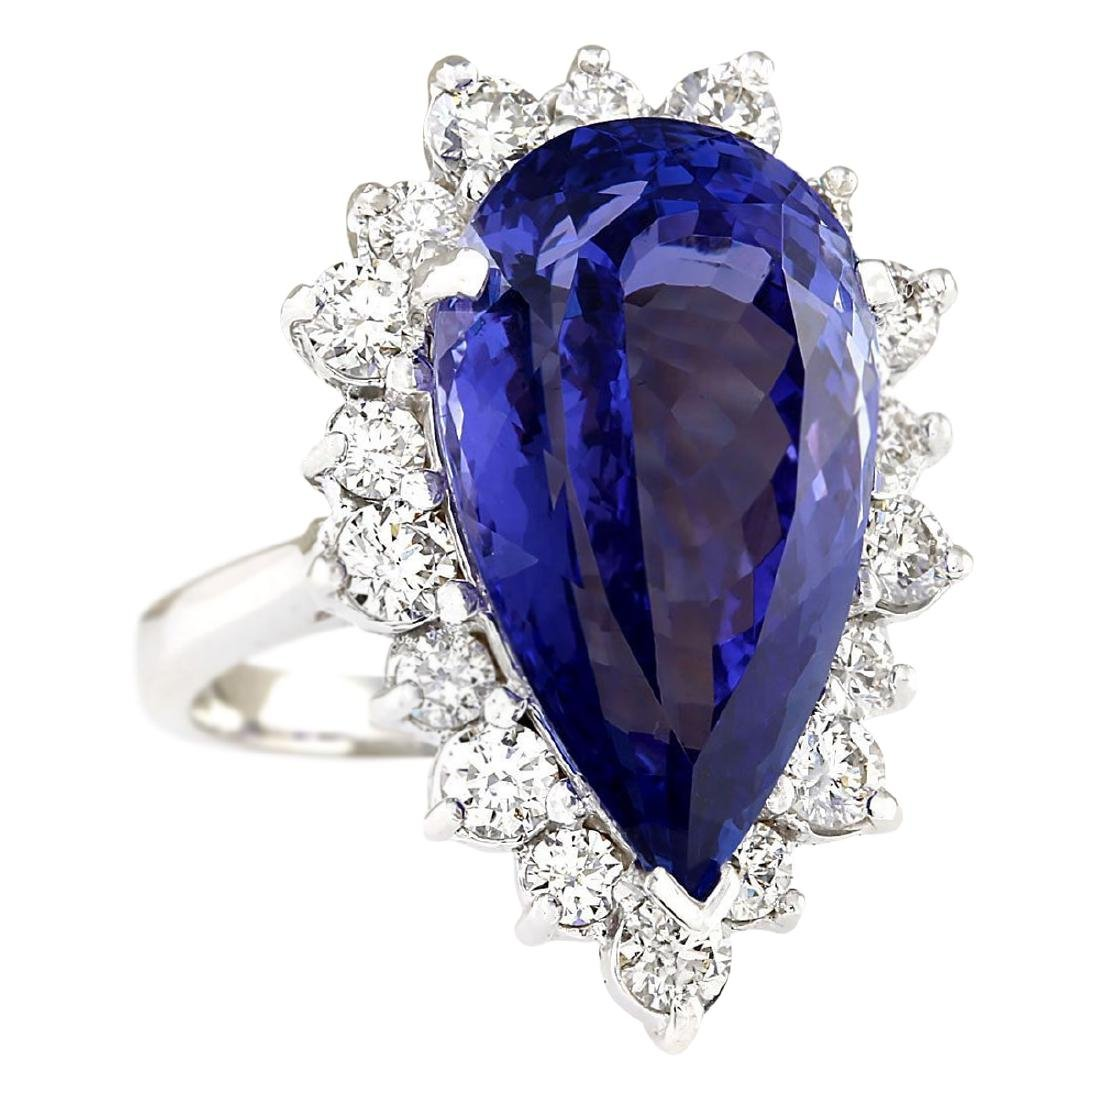 14.83 CTW Natural Blue Tanzanite And Diamond Ring 18K - 2